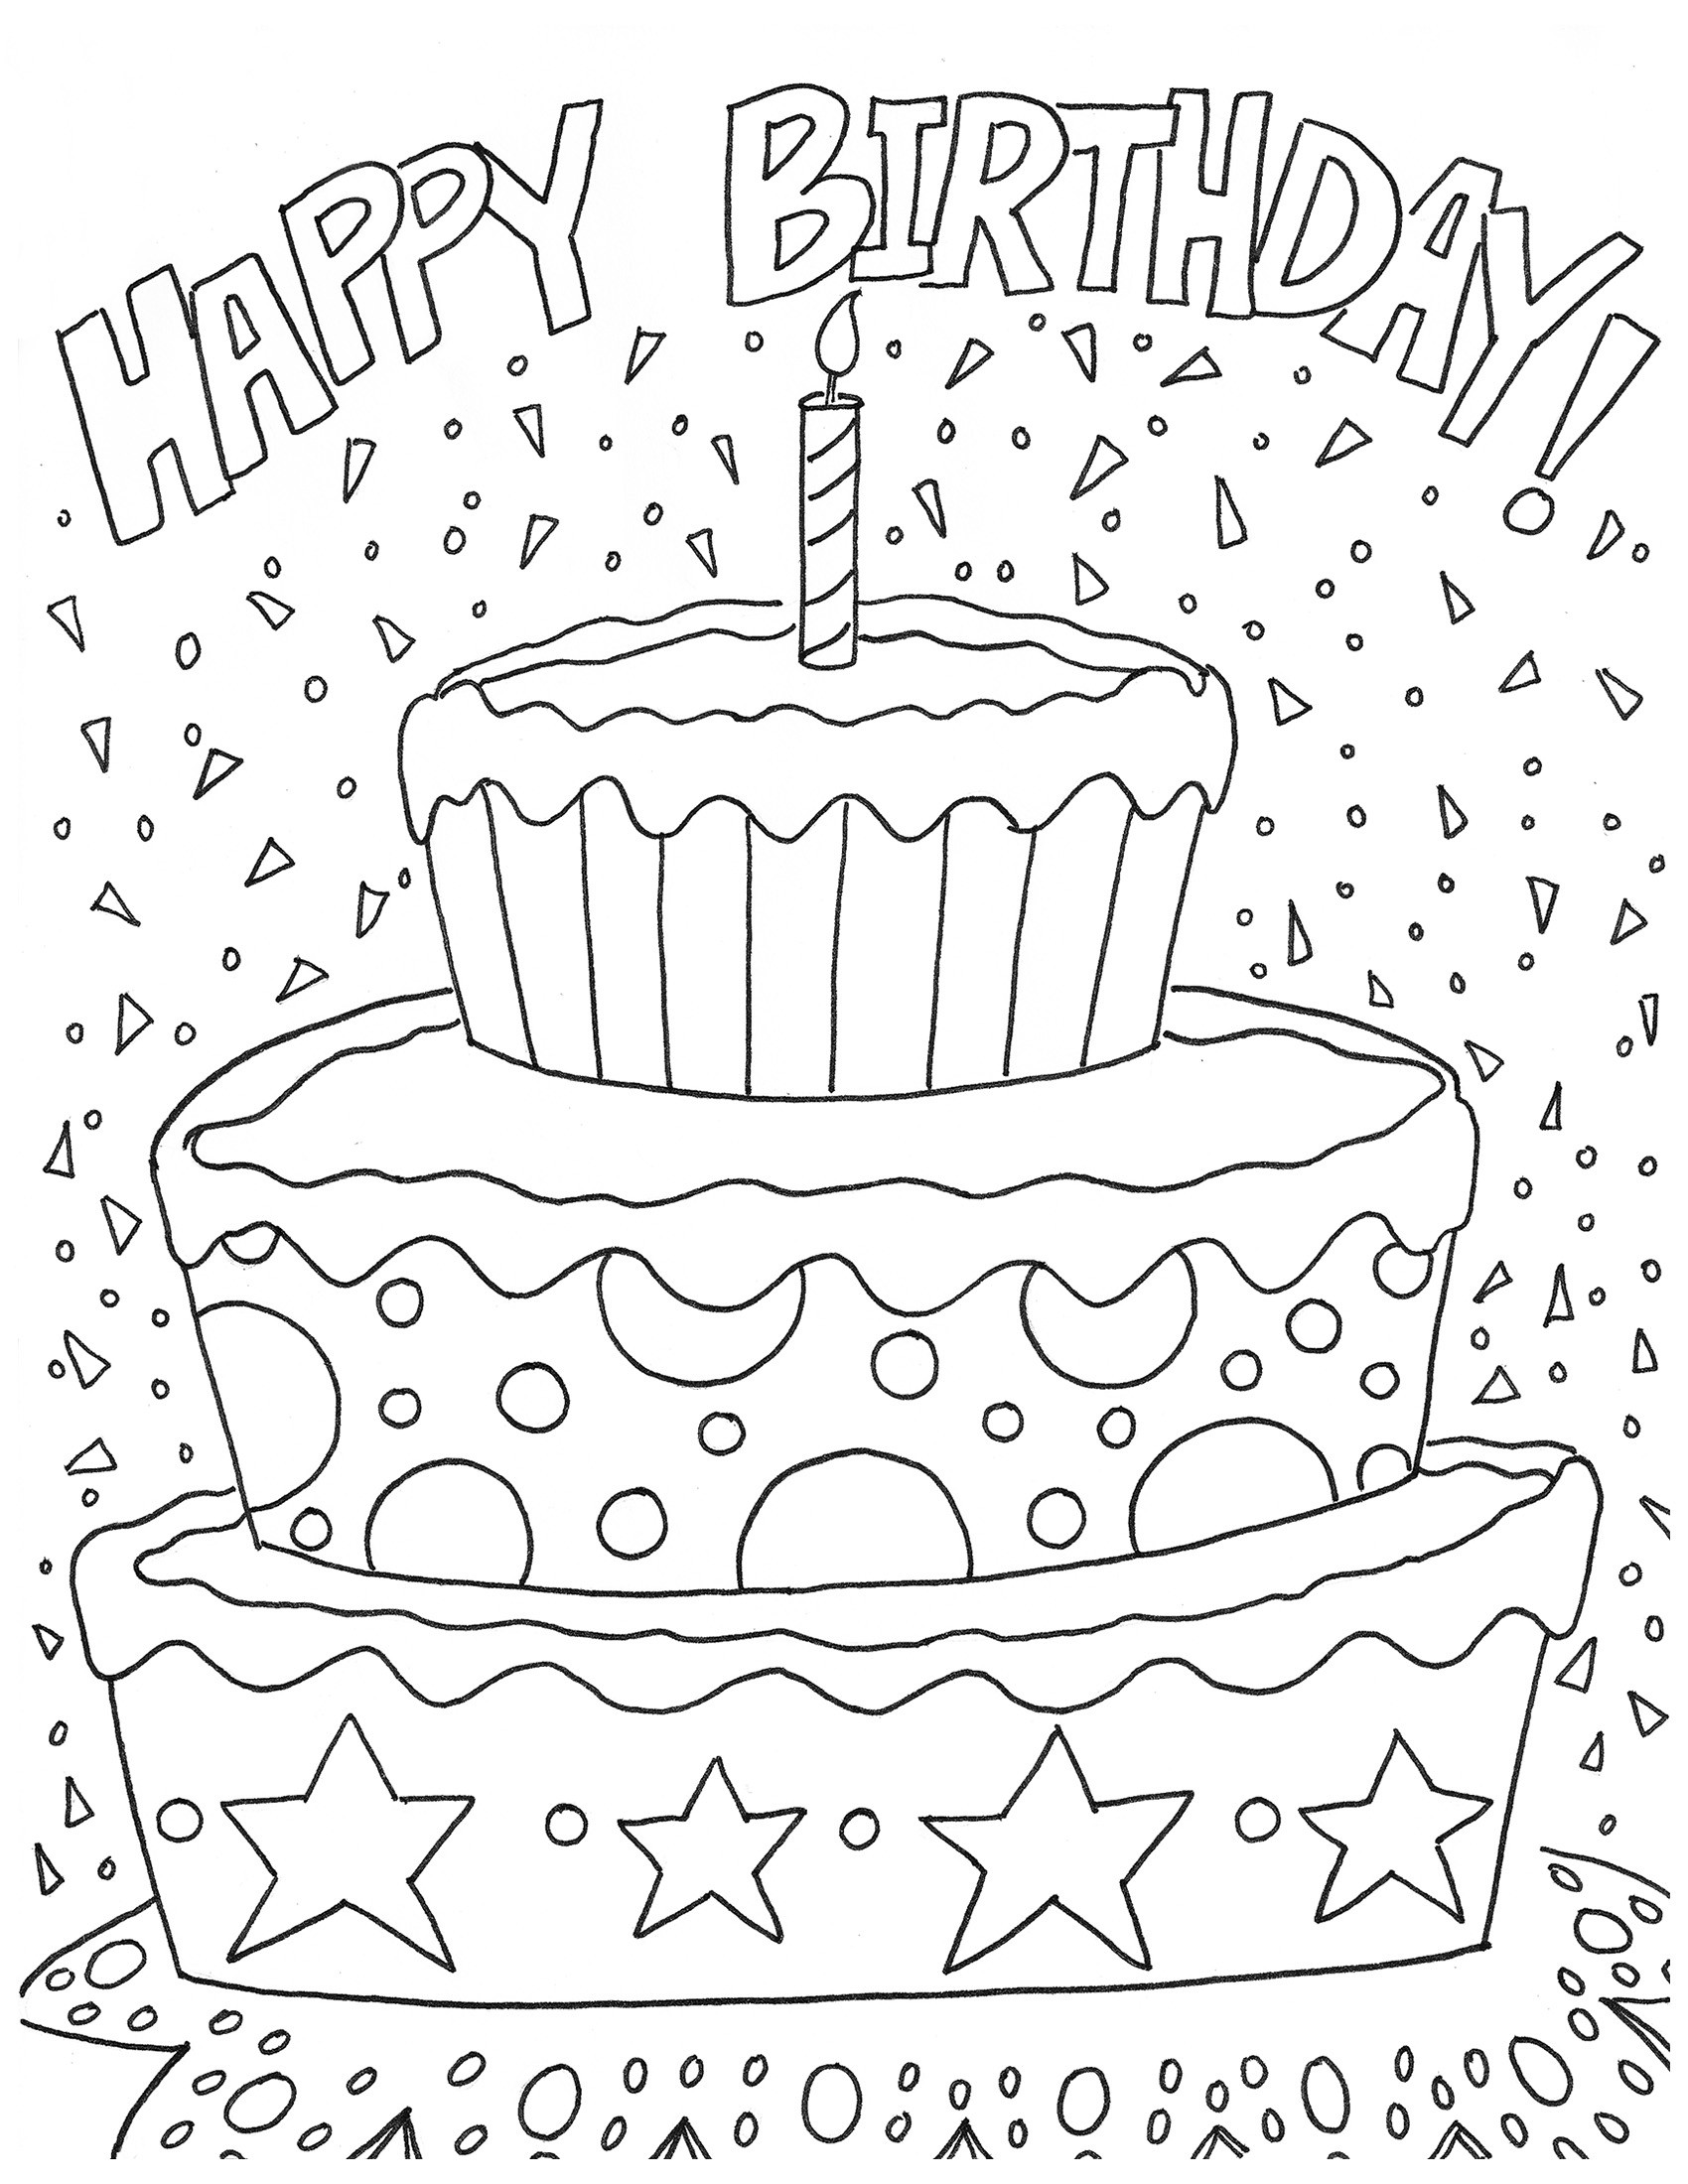 Best ideas about Coloring Sheets For Girls The Birthday . Save or Pin Birthday Coloring Pages coloringsuite Now.